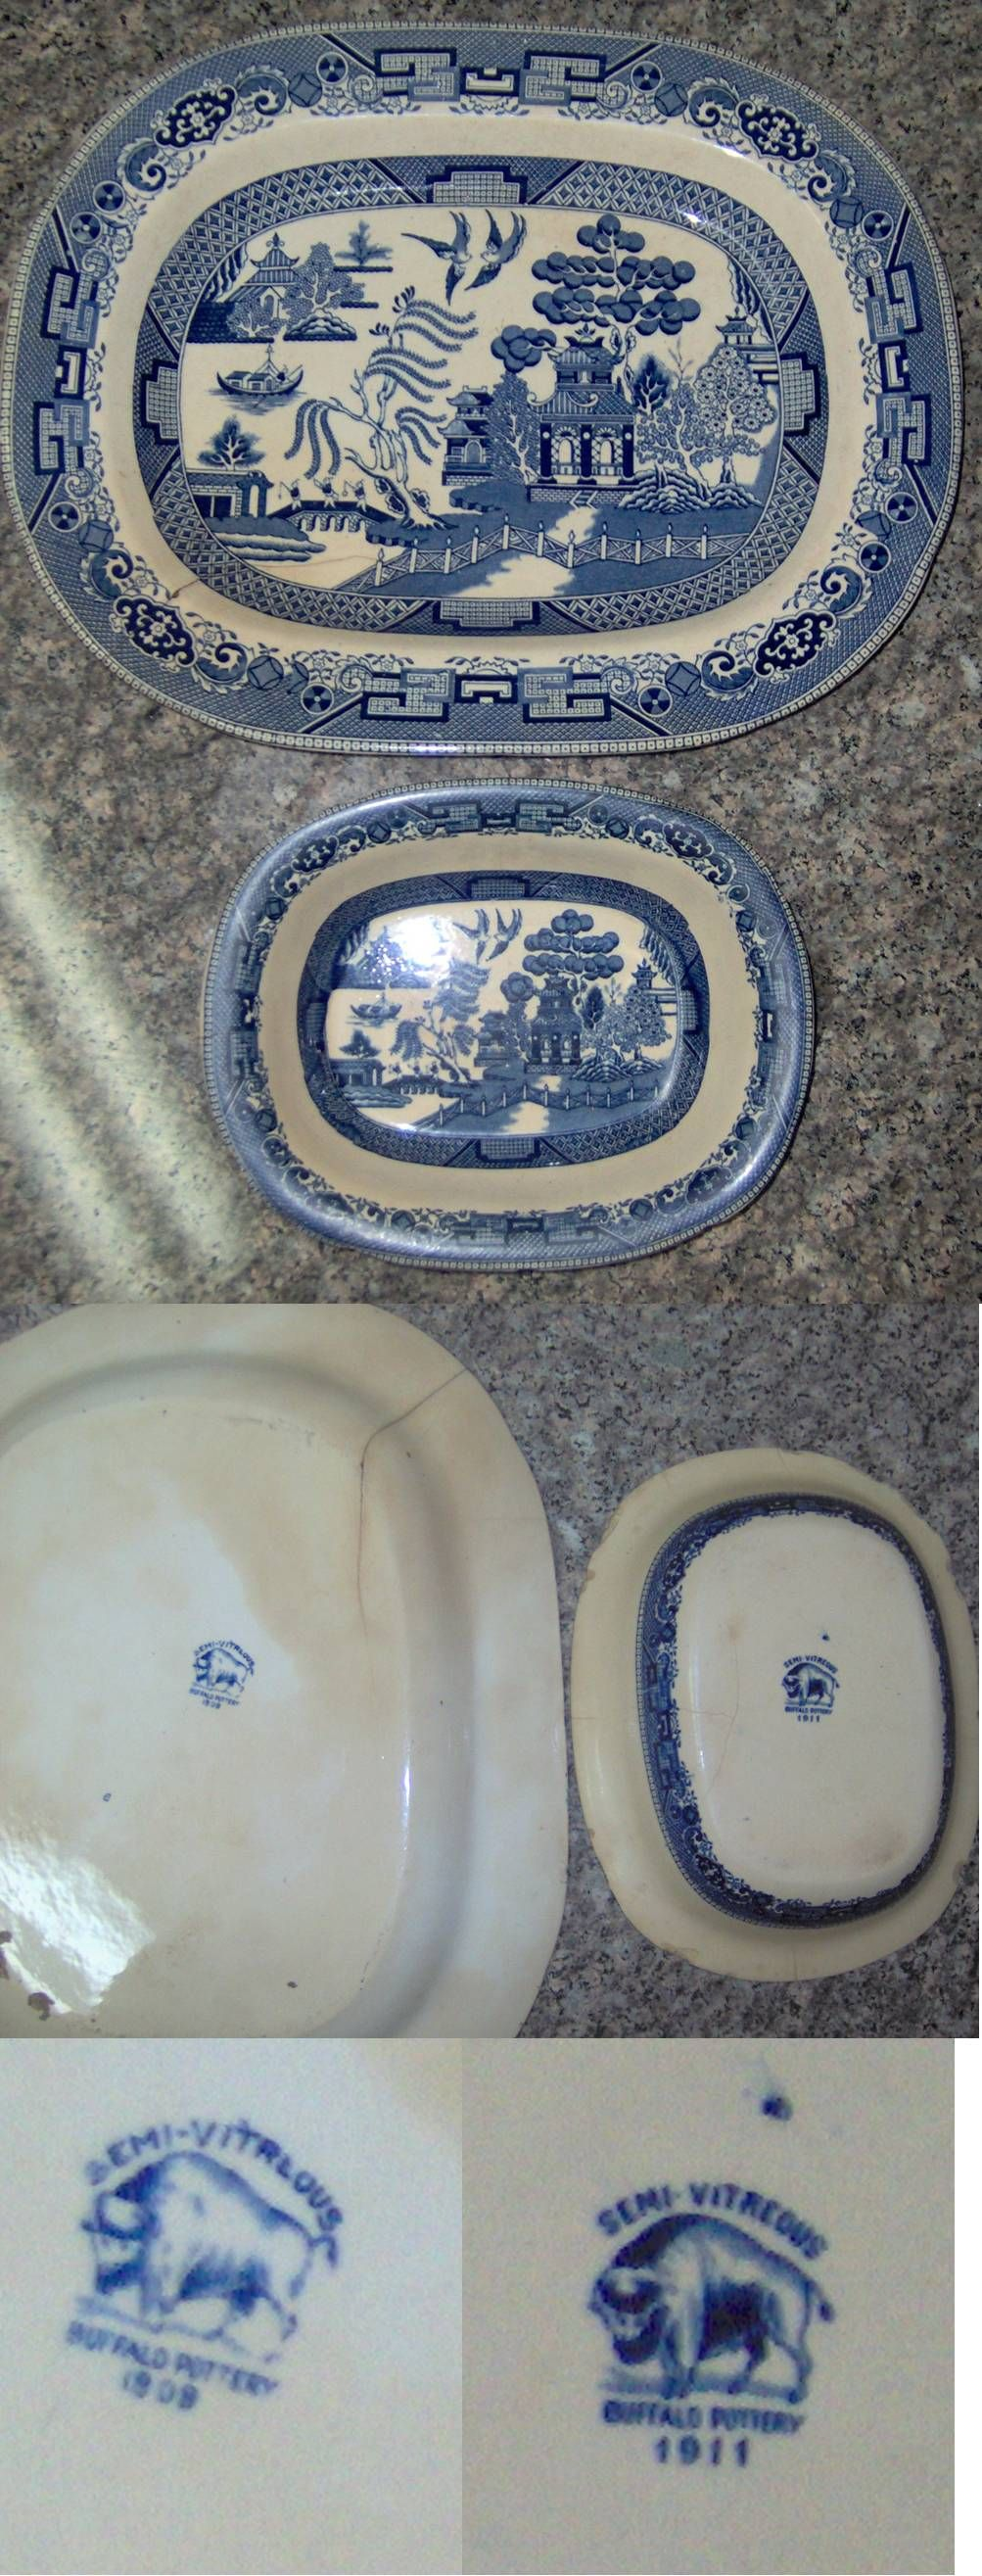 I inherited these 2 pieces of Buffalo Pottery from my great grandmother many years ago. They are kept in a safe place!